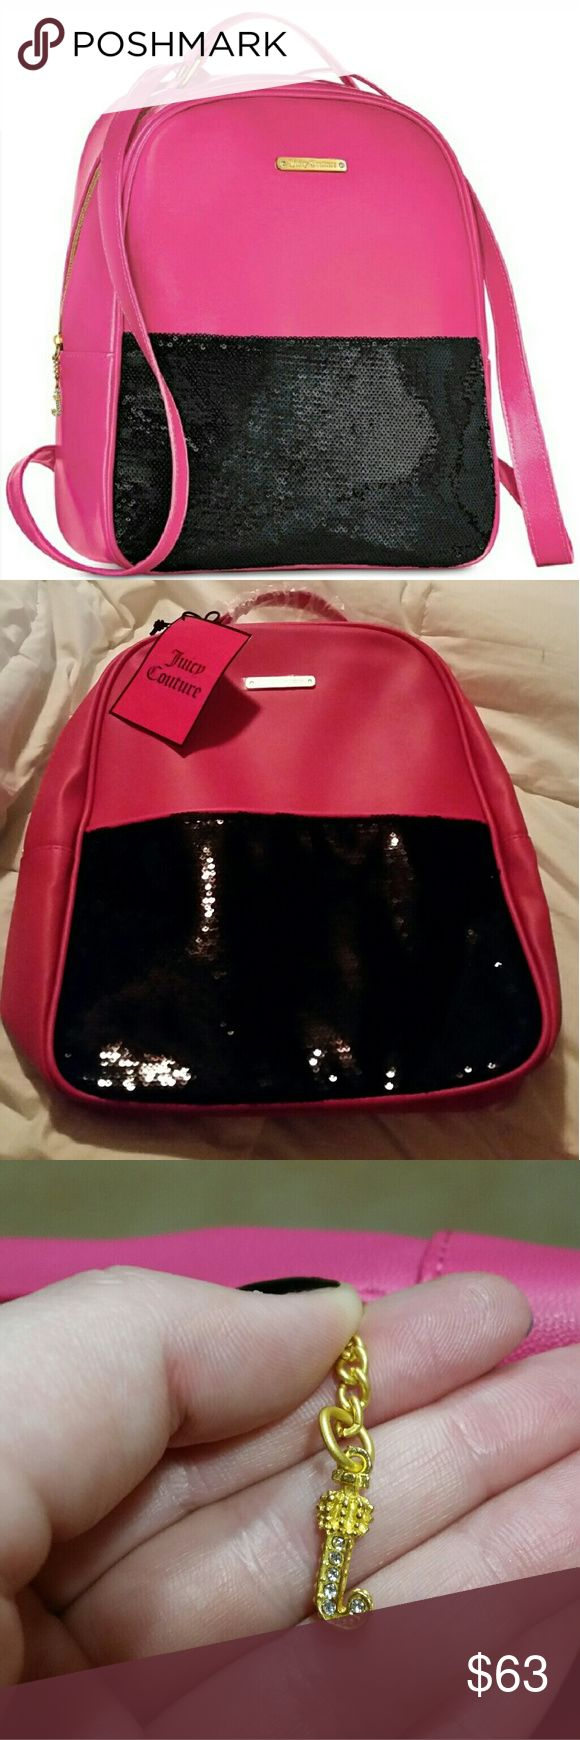 Juicy couture pink and black backpack Never used! Tags still attached! Juicy Couture Bags Backpacks